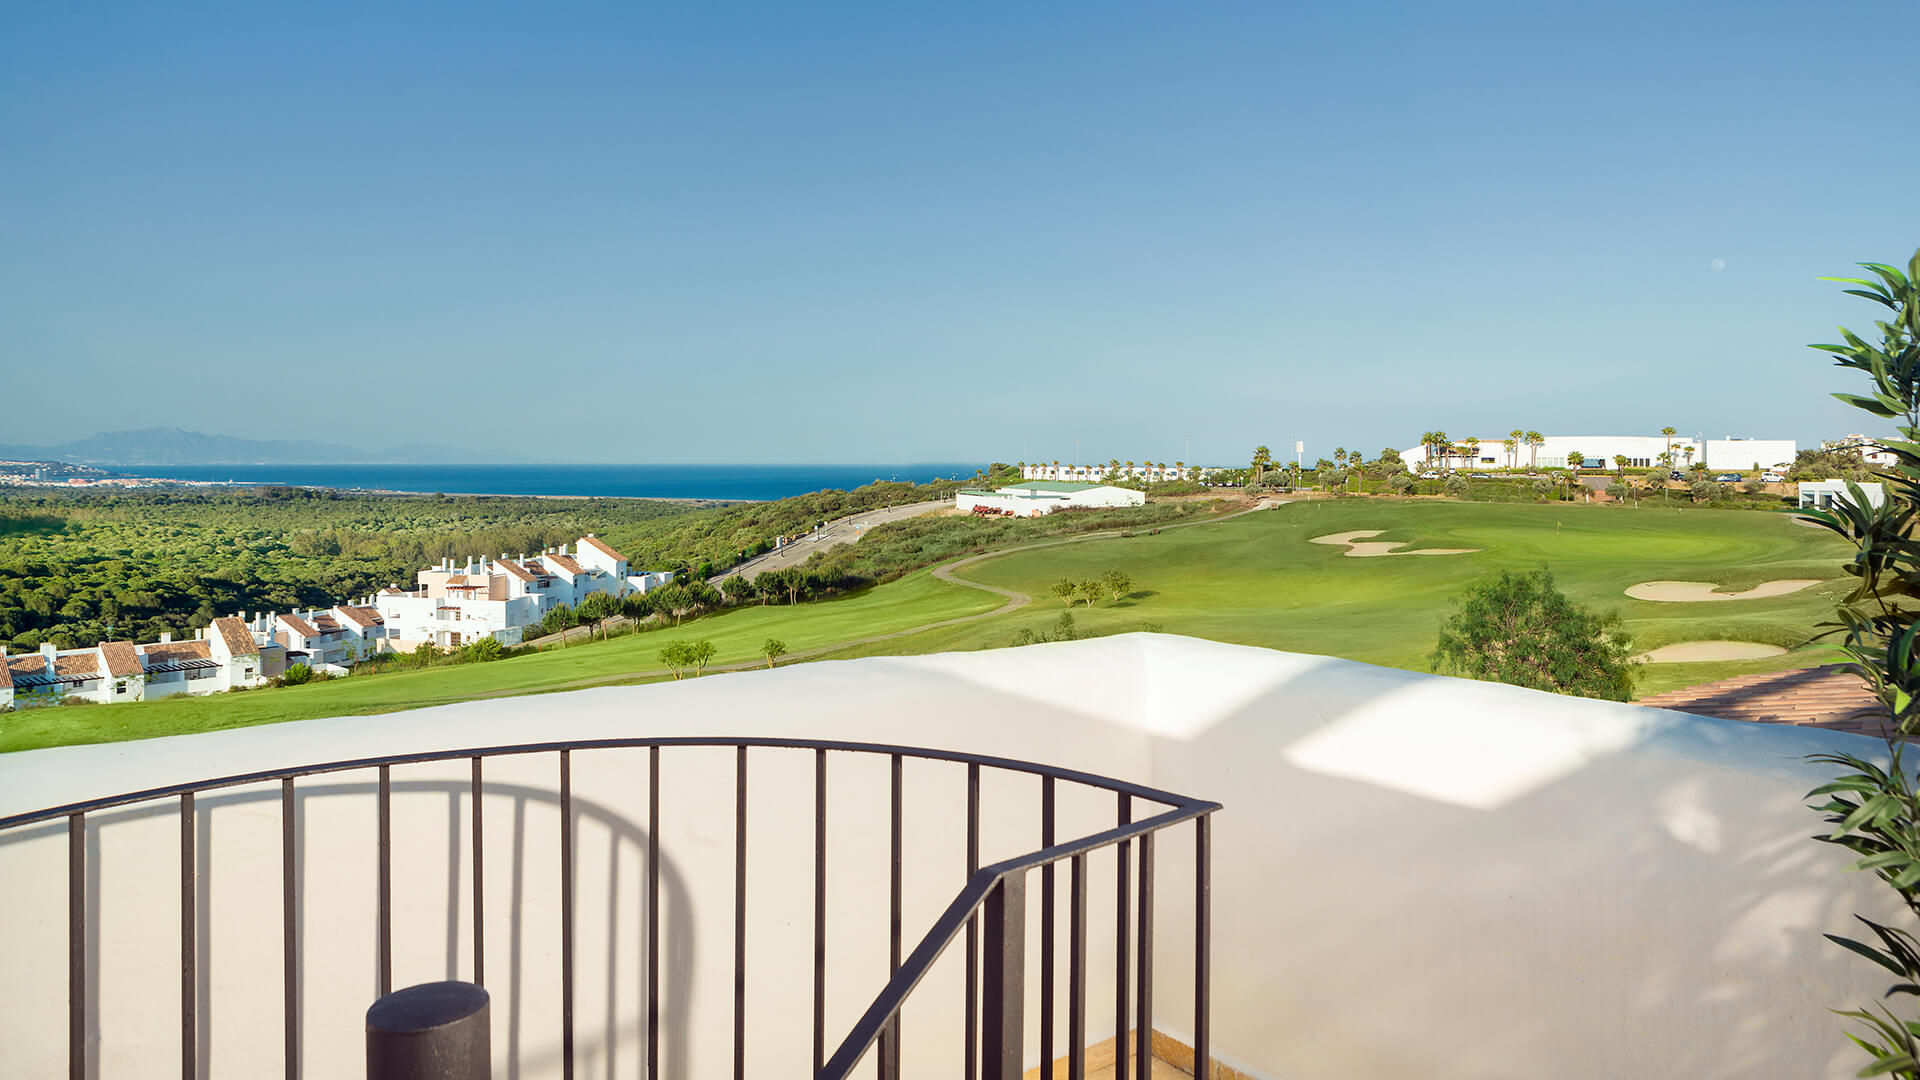 Alcaidesa Golf and Beach